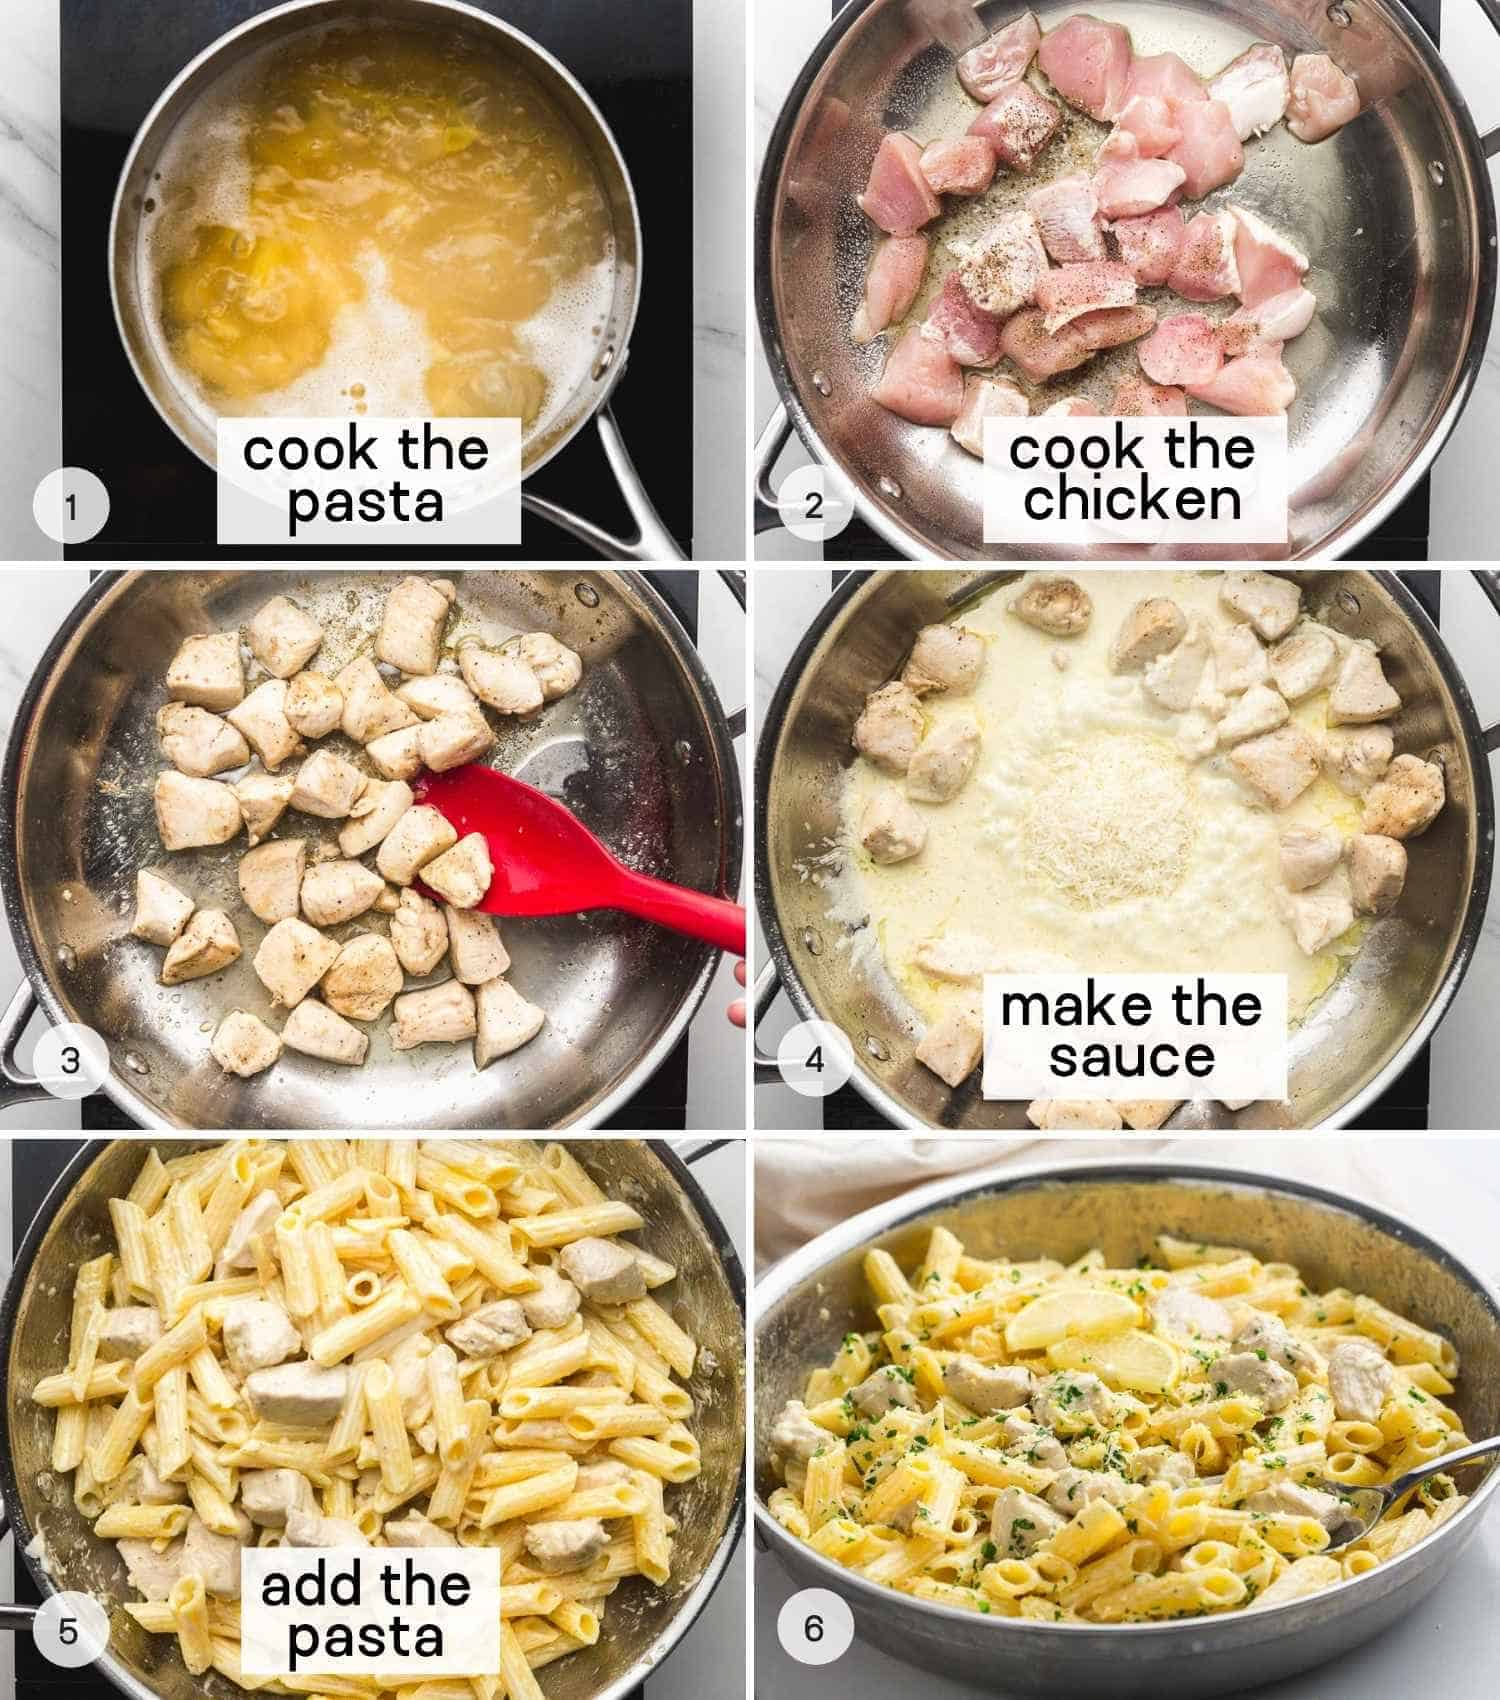 How to make Creamy Lemon Chicken Pasta, a collage with 6 images with text overlay including how to cook pasta, cook the chicken, make the sauce, and mix in the pasta to make the final dish.